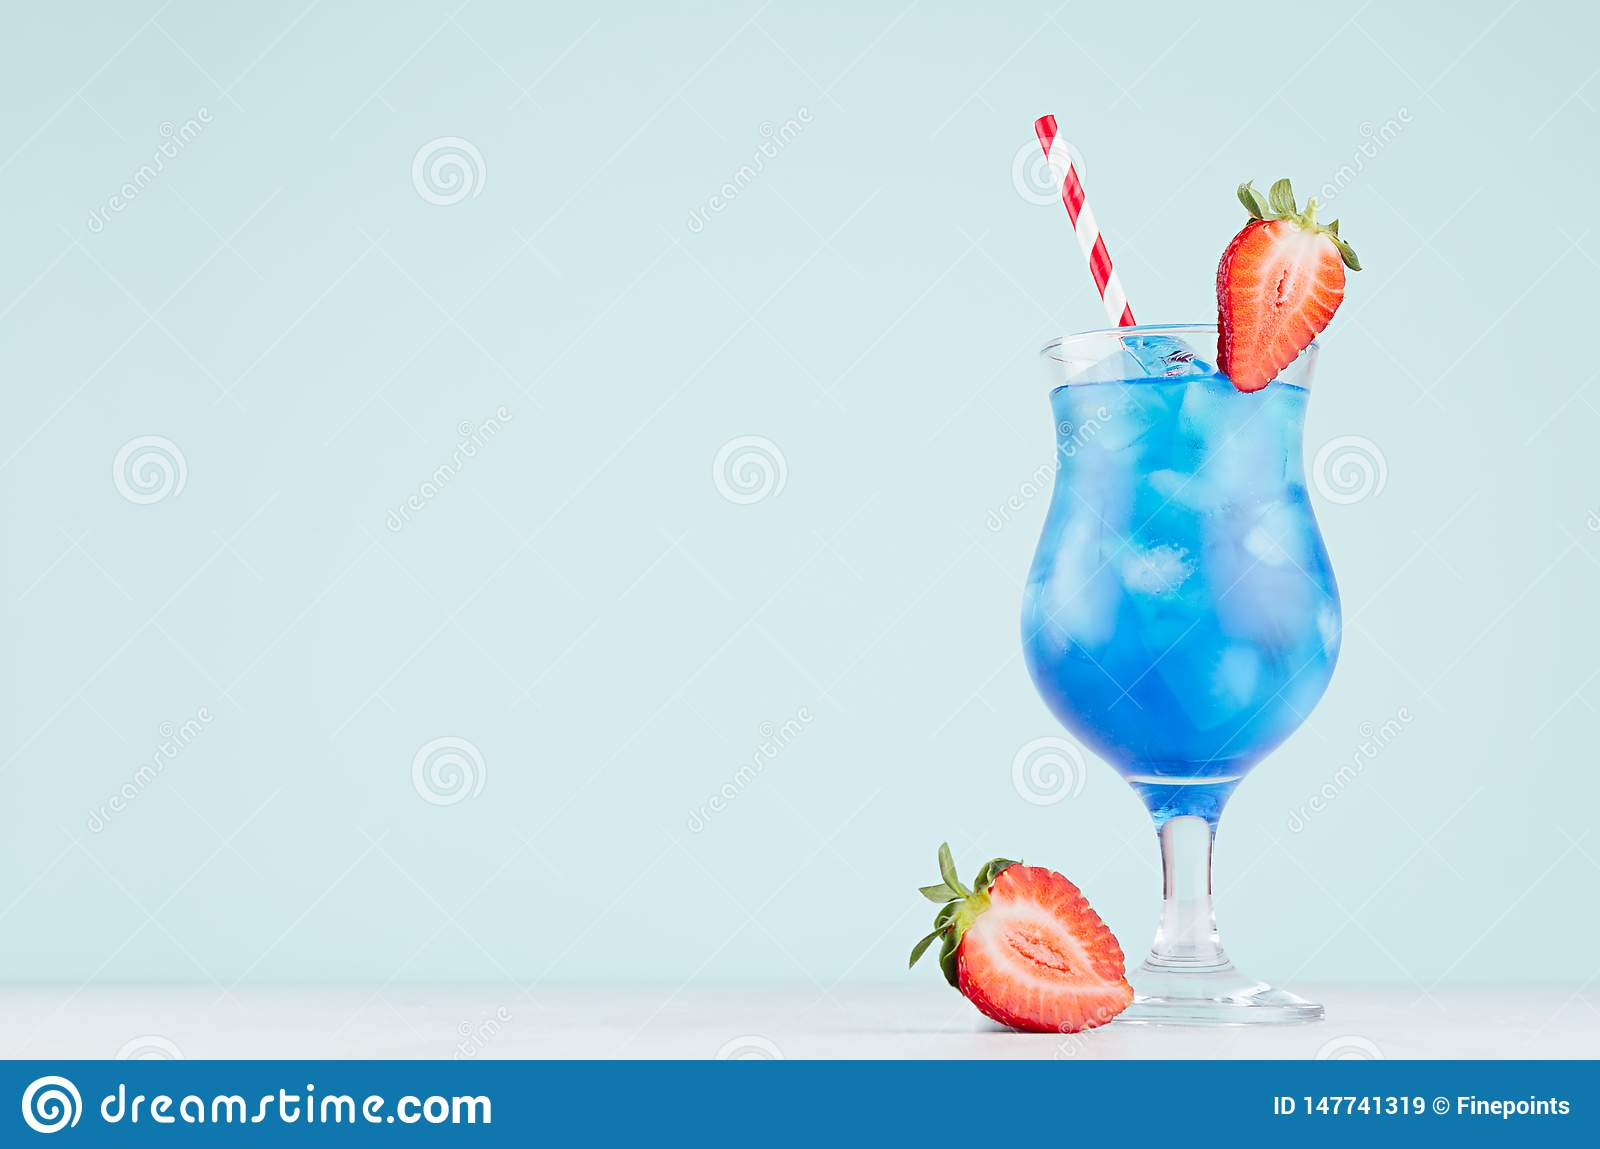 Bright blue tropical cocktail with curacao liquor, ice cubes, strawberry, straw in misted wineglass on soft light blue background.